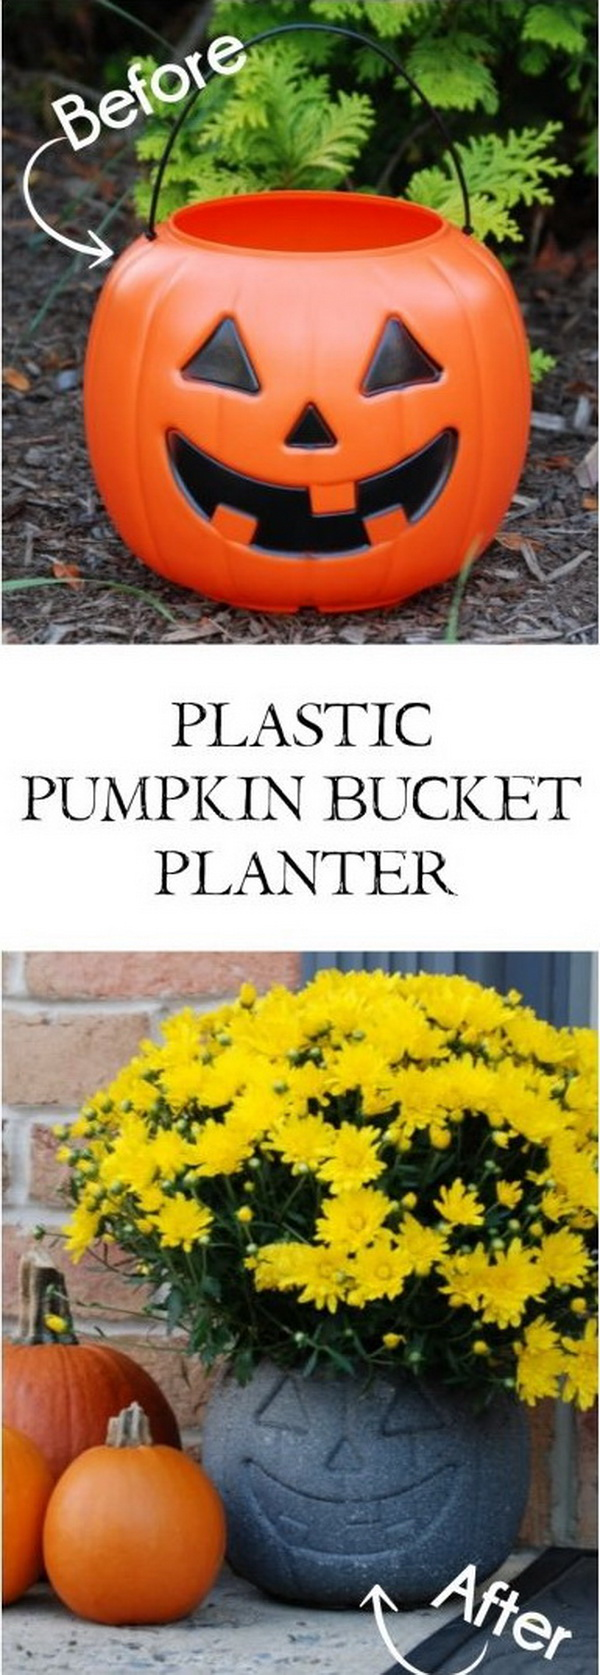 DIY Stone-Look Planter Made with Plastic Pumpkin Bucket.